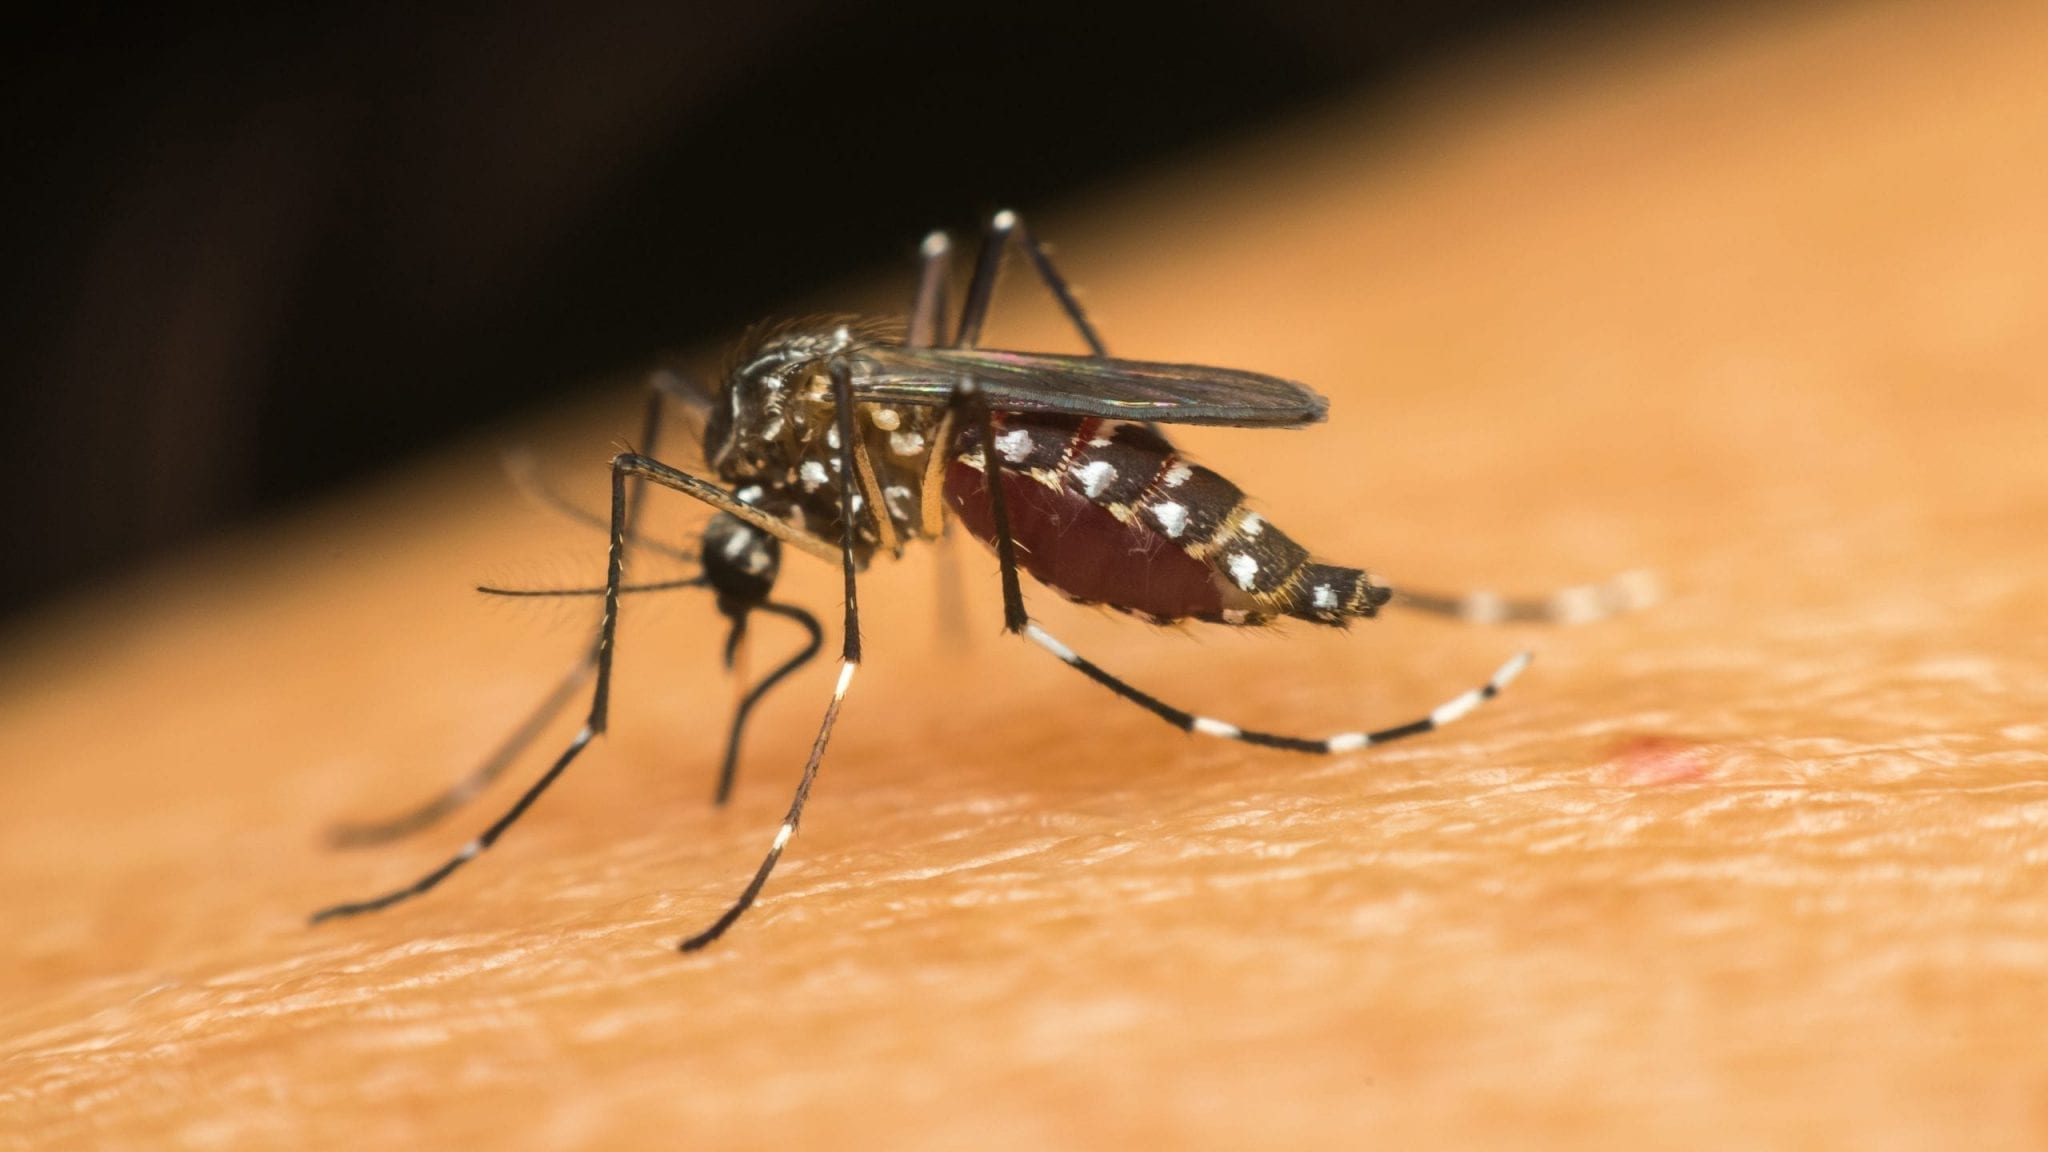 Home remedies to get rid of malaria parasite